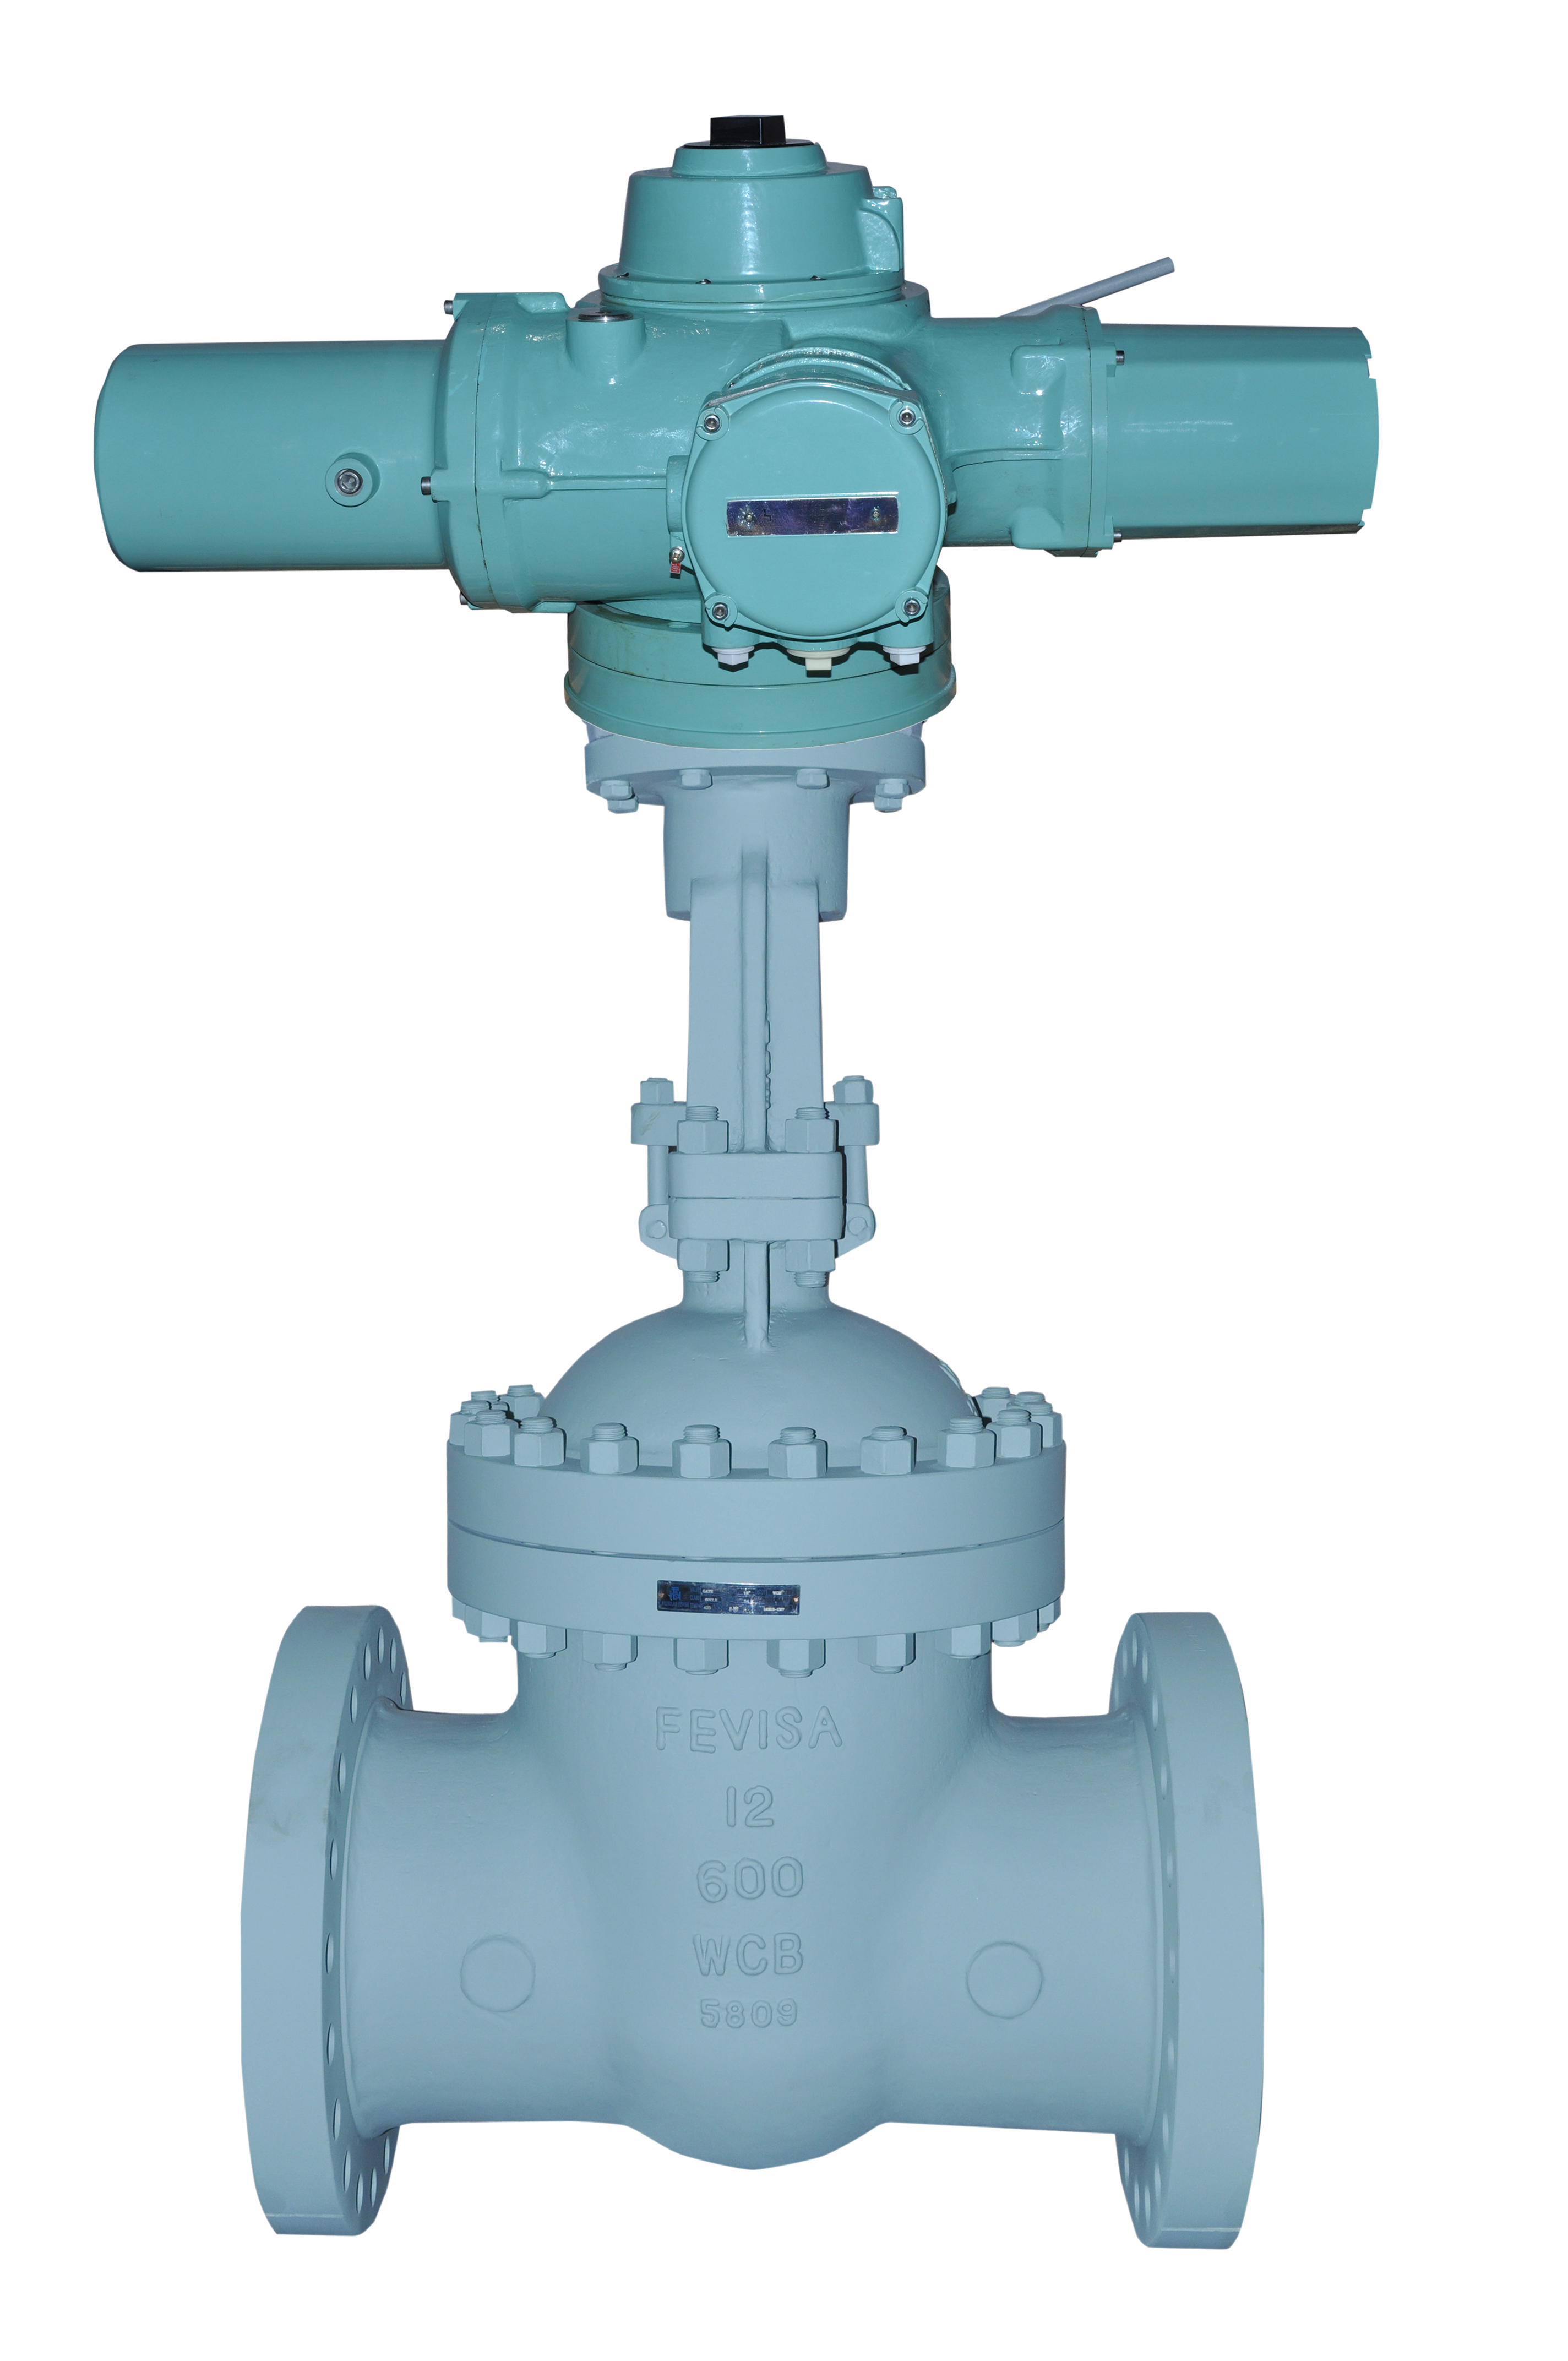 Motor Operated Gate Valves (MOVs)